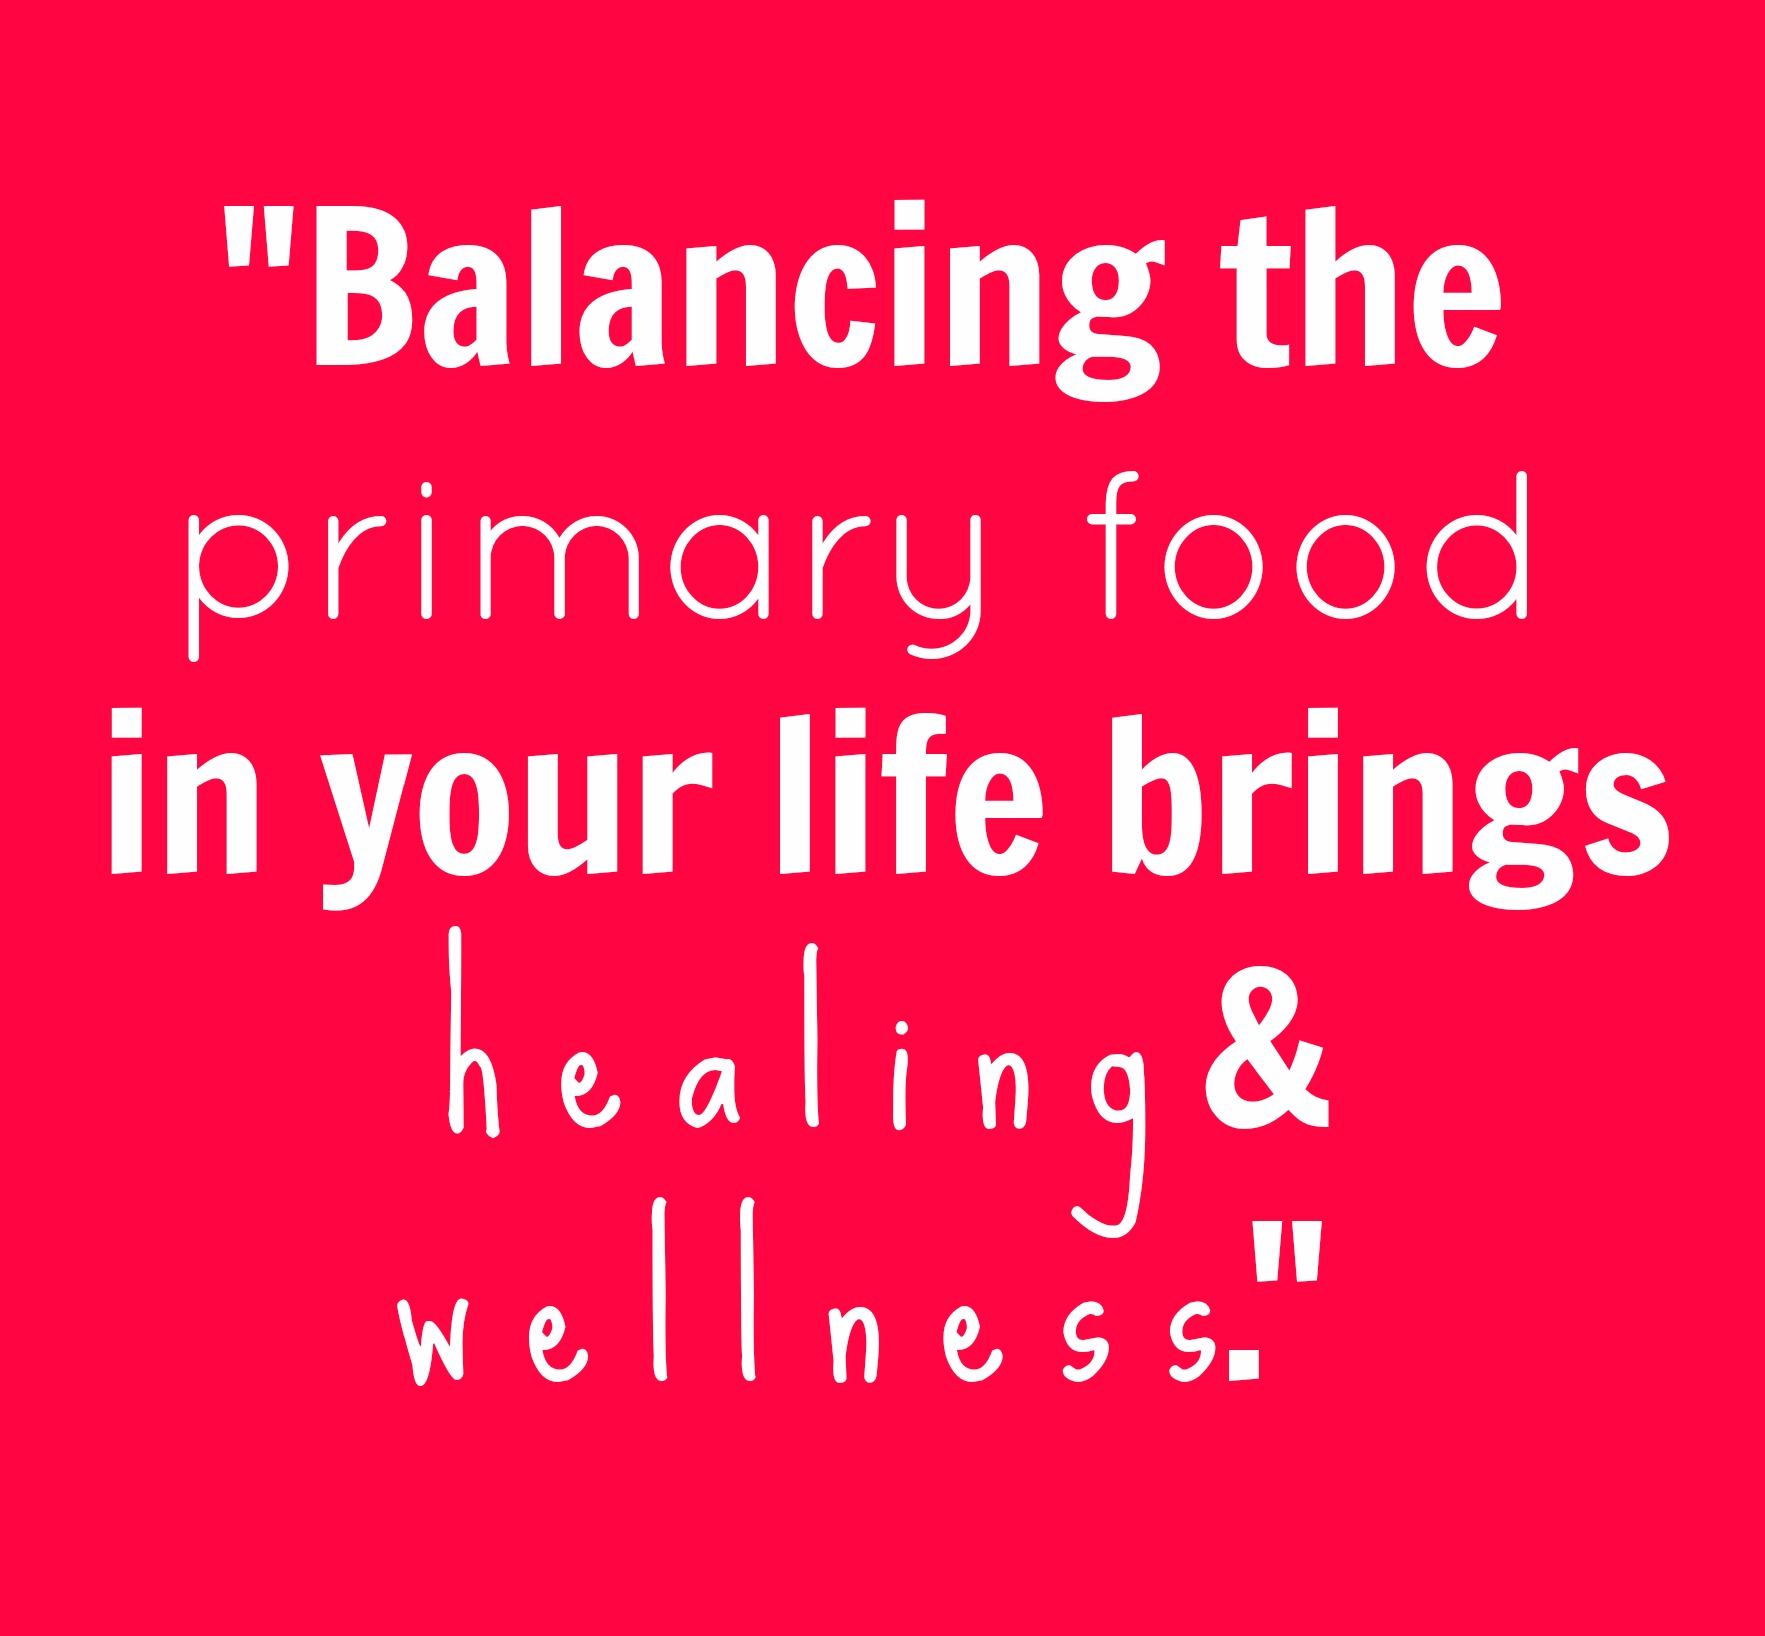 Wellness Quotes Interesting Iin Chat Health & Wellness Quotes I Love  Foodie Loves Fitness